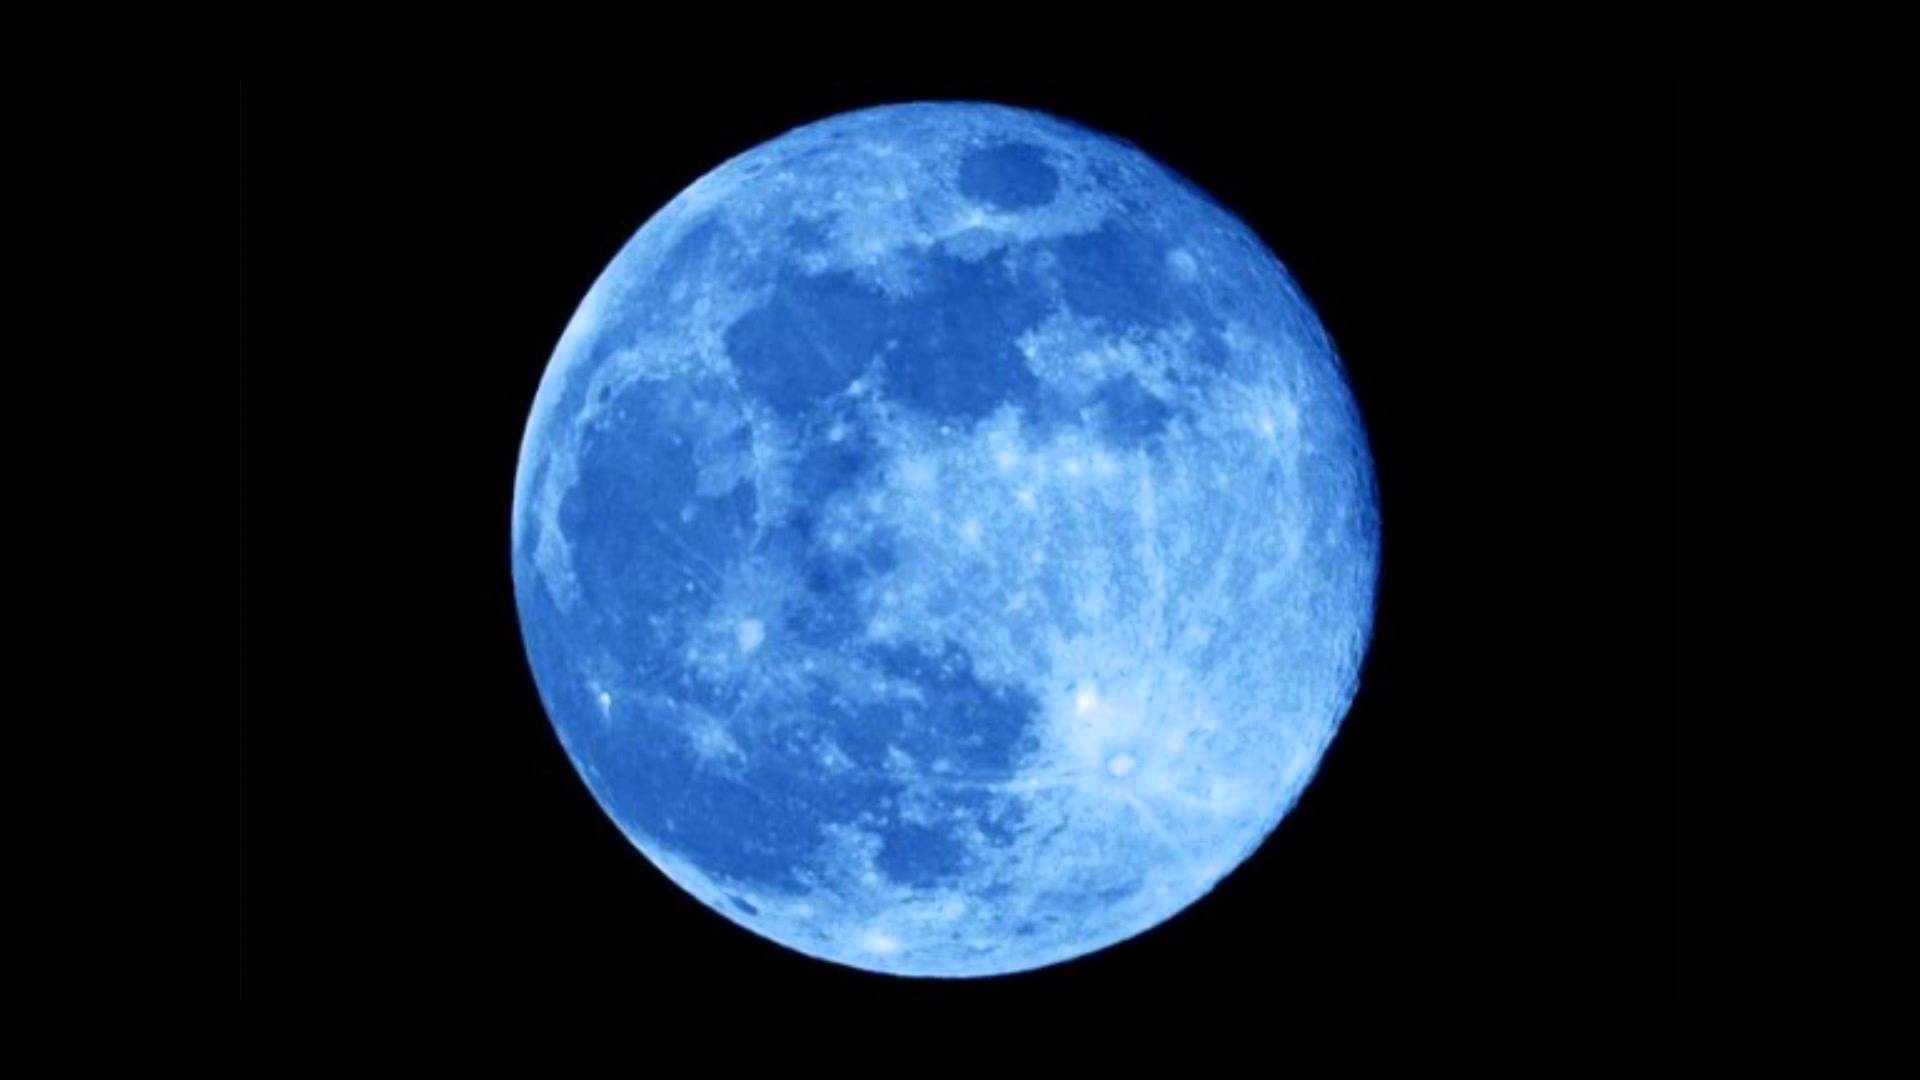 Picture of the Crip moon